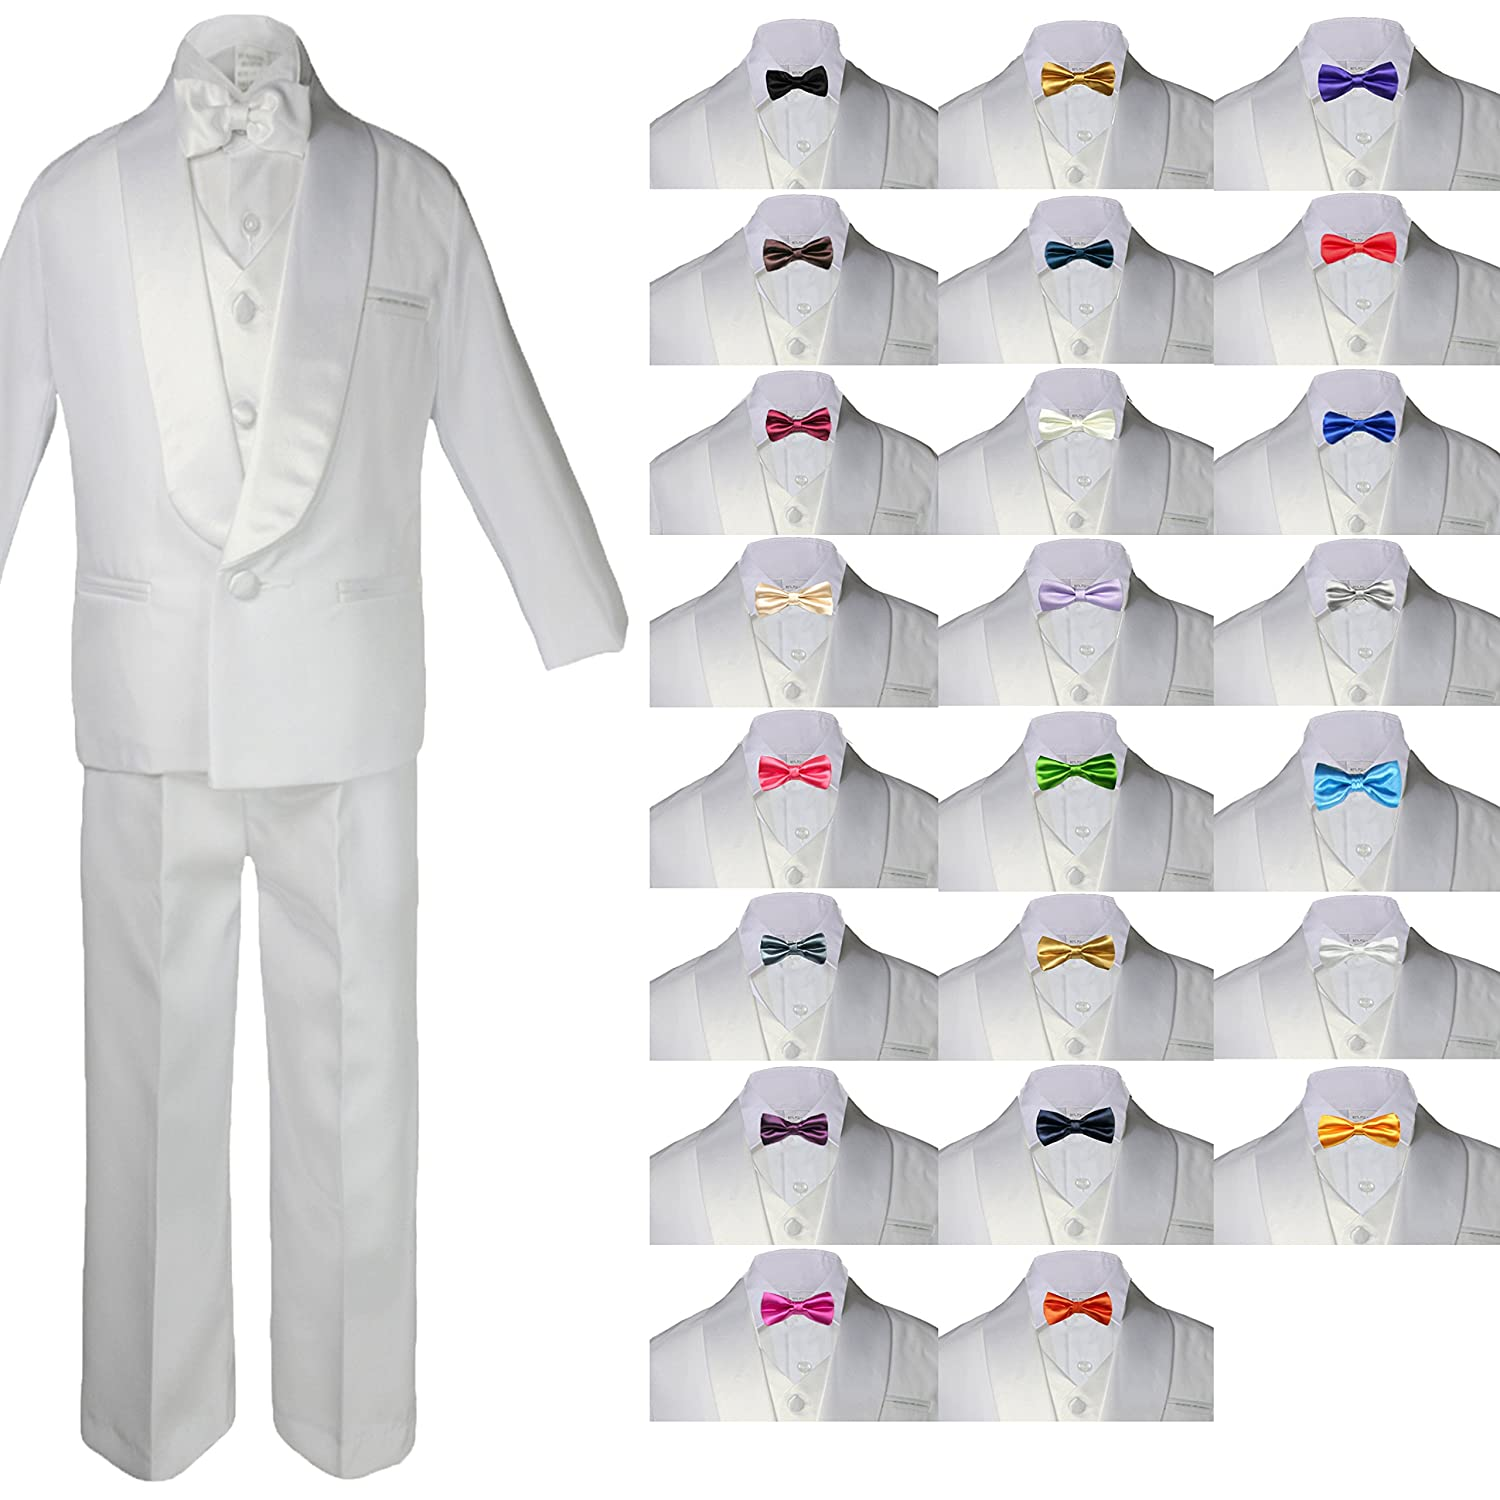 6pc Boys White Satin Shawl Lapel Suits Tuxedo EXTRA Brown Satin Bow tie Set